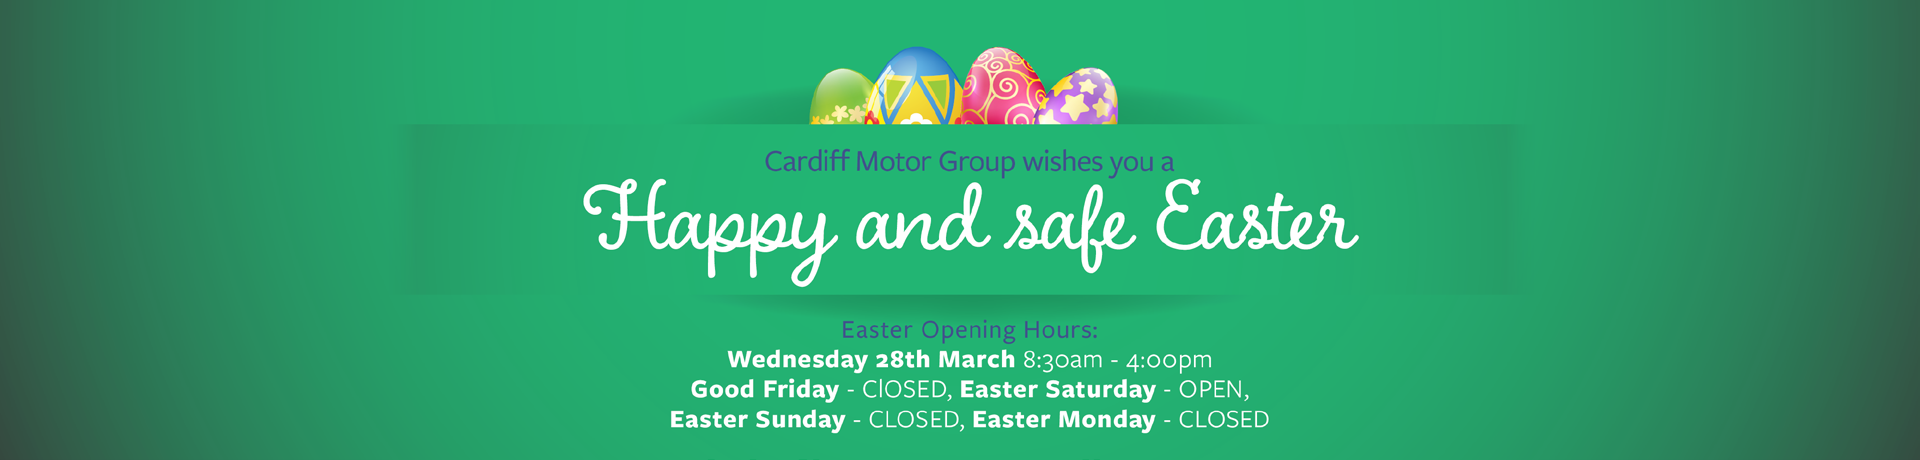 Happy Easter from Cardiff Hyundai